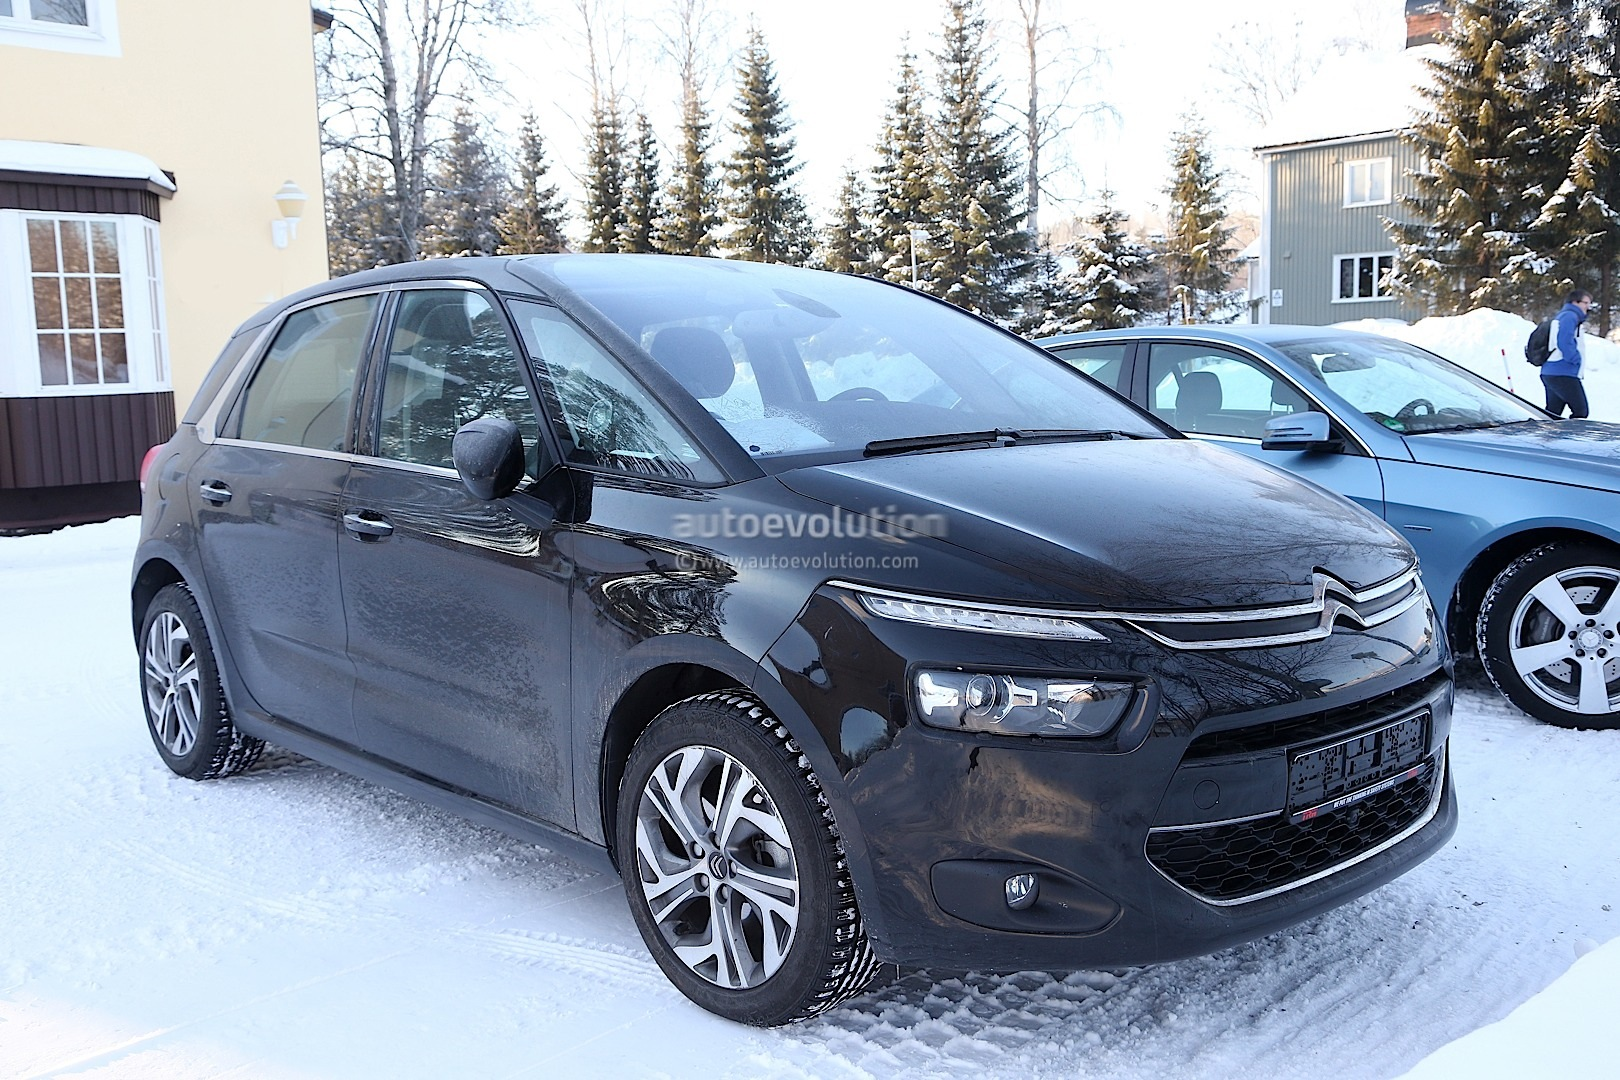 Spyshots 2014 citroen c4 picasso interior revealed autoevolution - C4 picasso interior ...